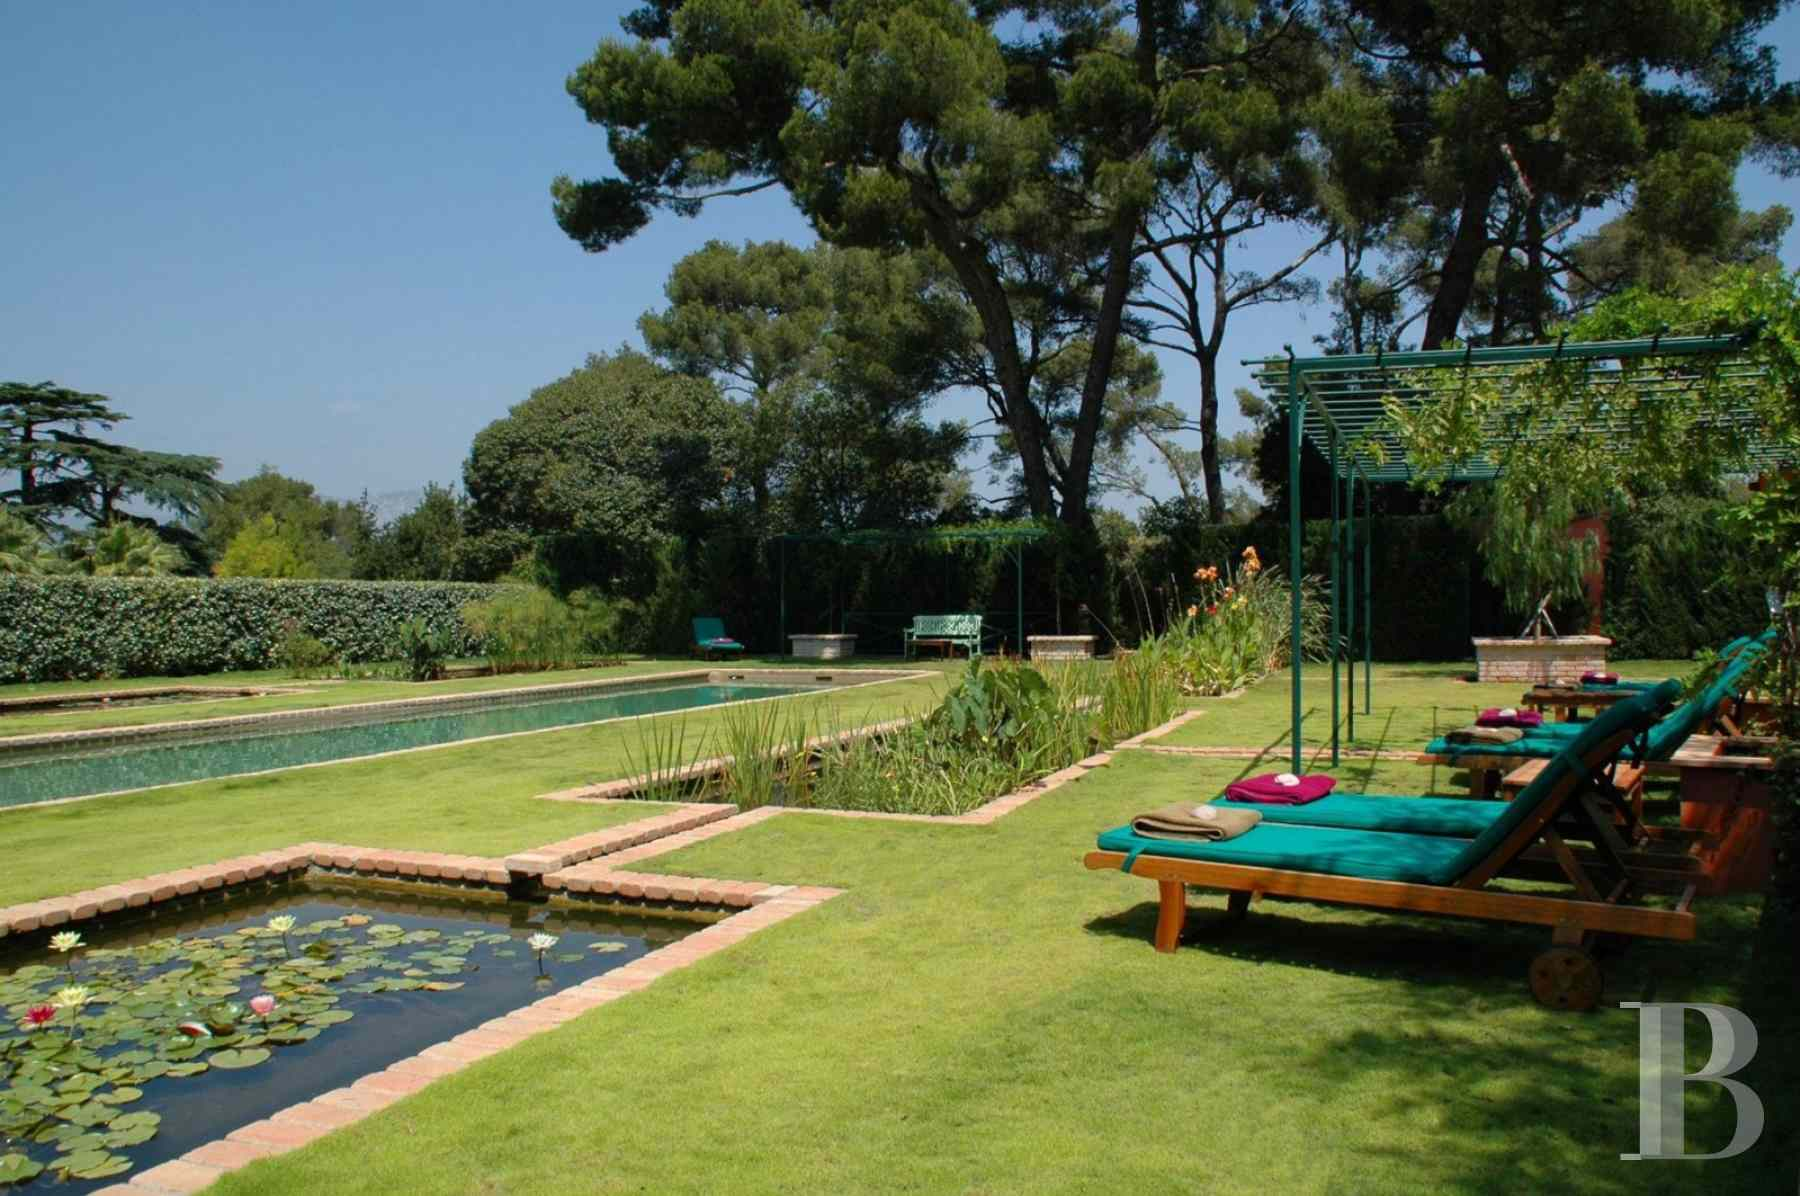 property for sale France provence cote dazur villa toulon - 8 zoom